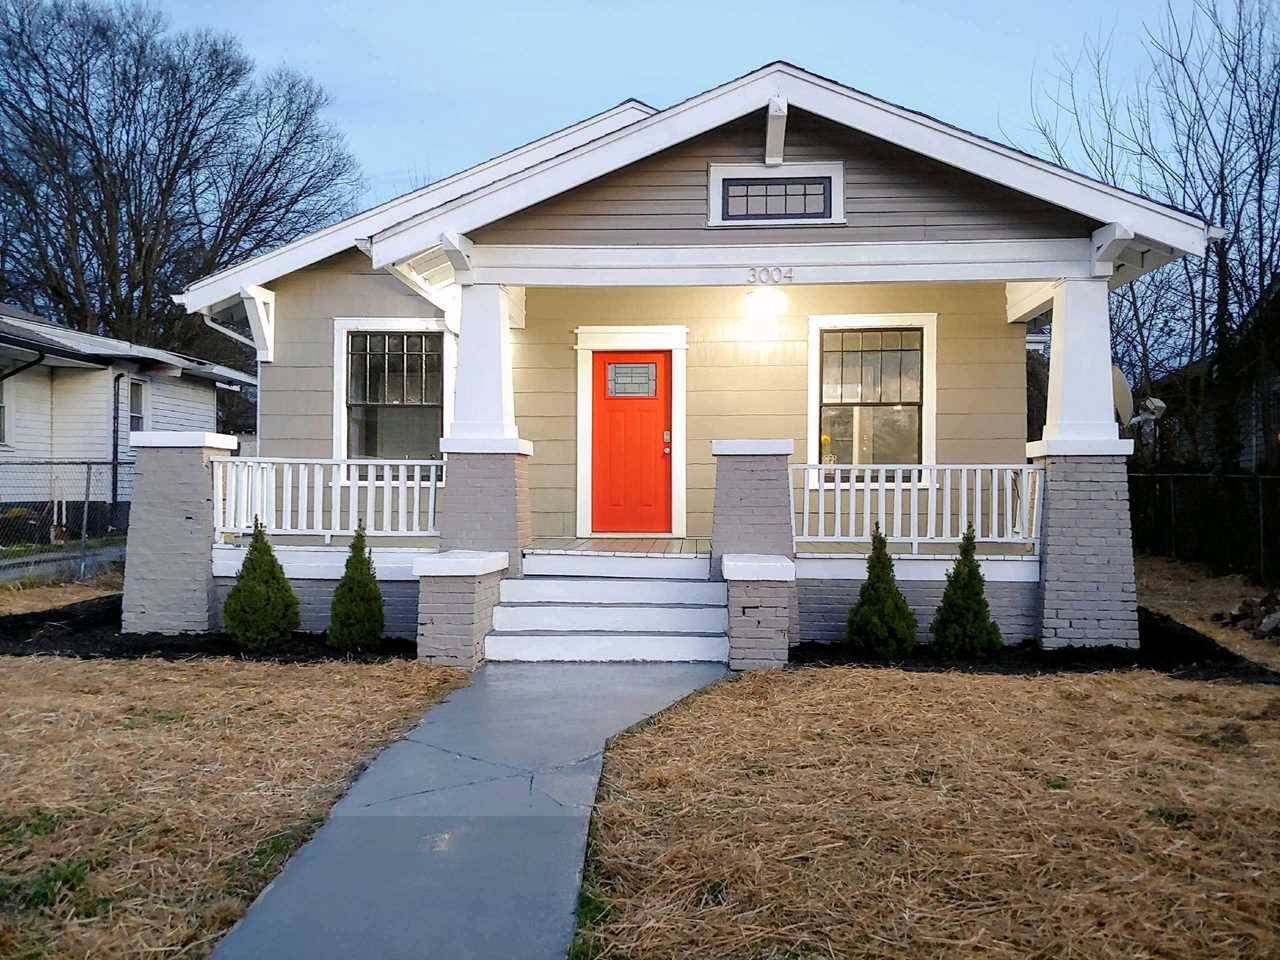 3004 Linden Ave Knoxville TN 37914 in Lake Parks Springs Addition | MLS 1069299 - GreatLifeRE.com Photo 1